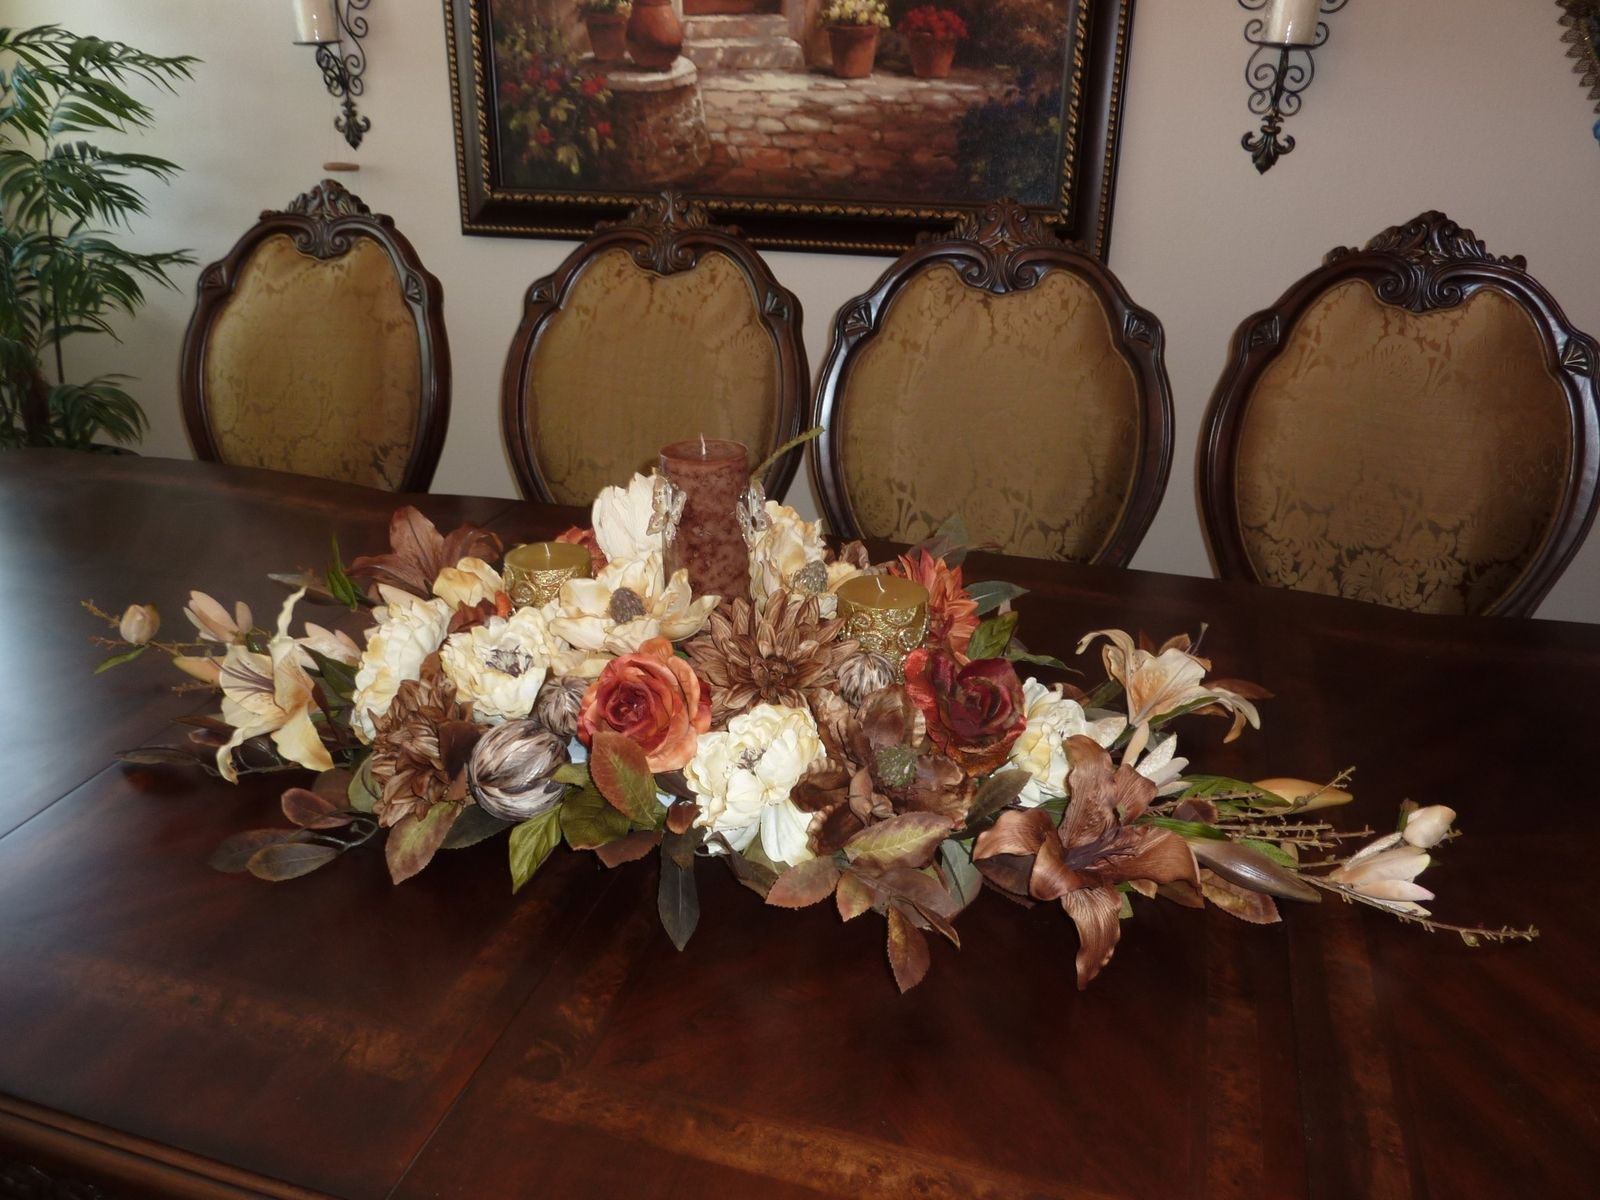 Unique Formal Centerpieces Dining Table Custom Rustic Room Centerpiece Fl Arrangement By